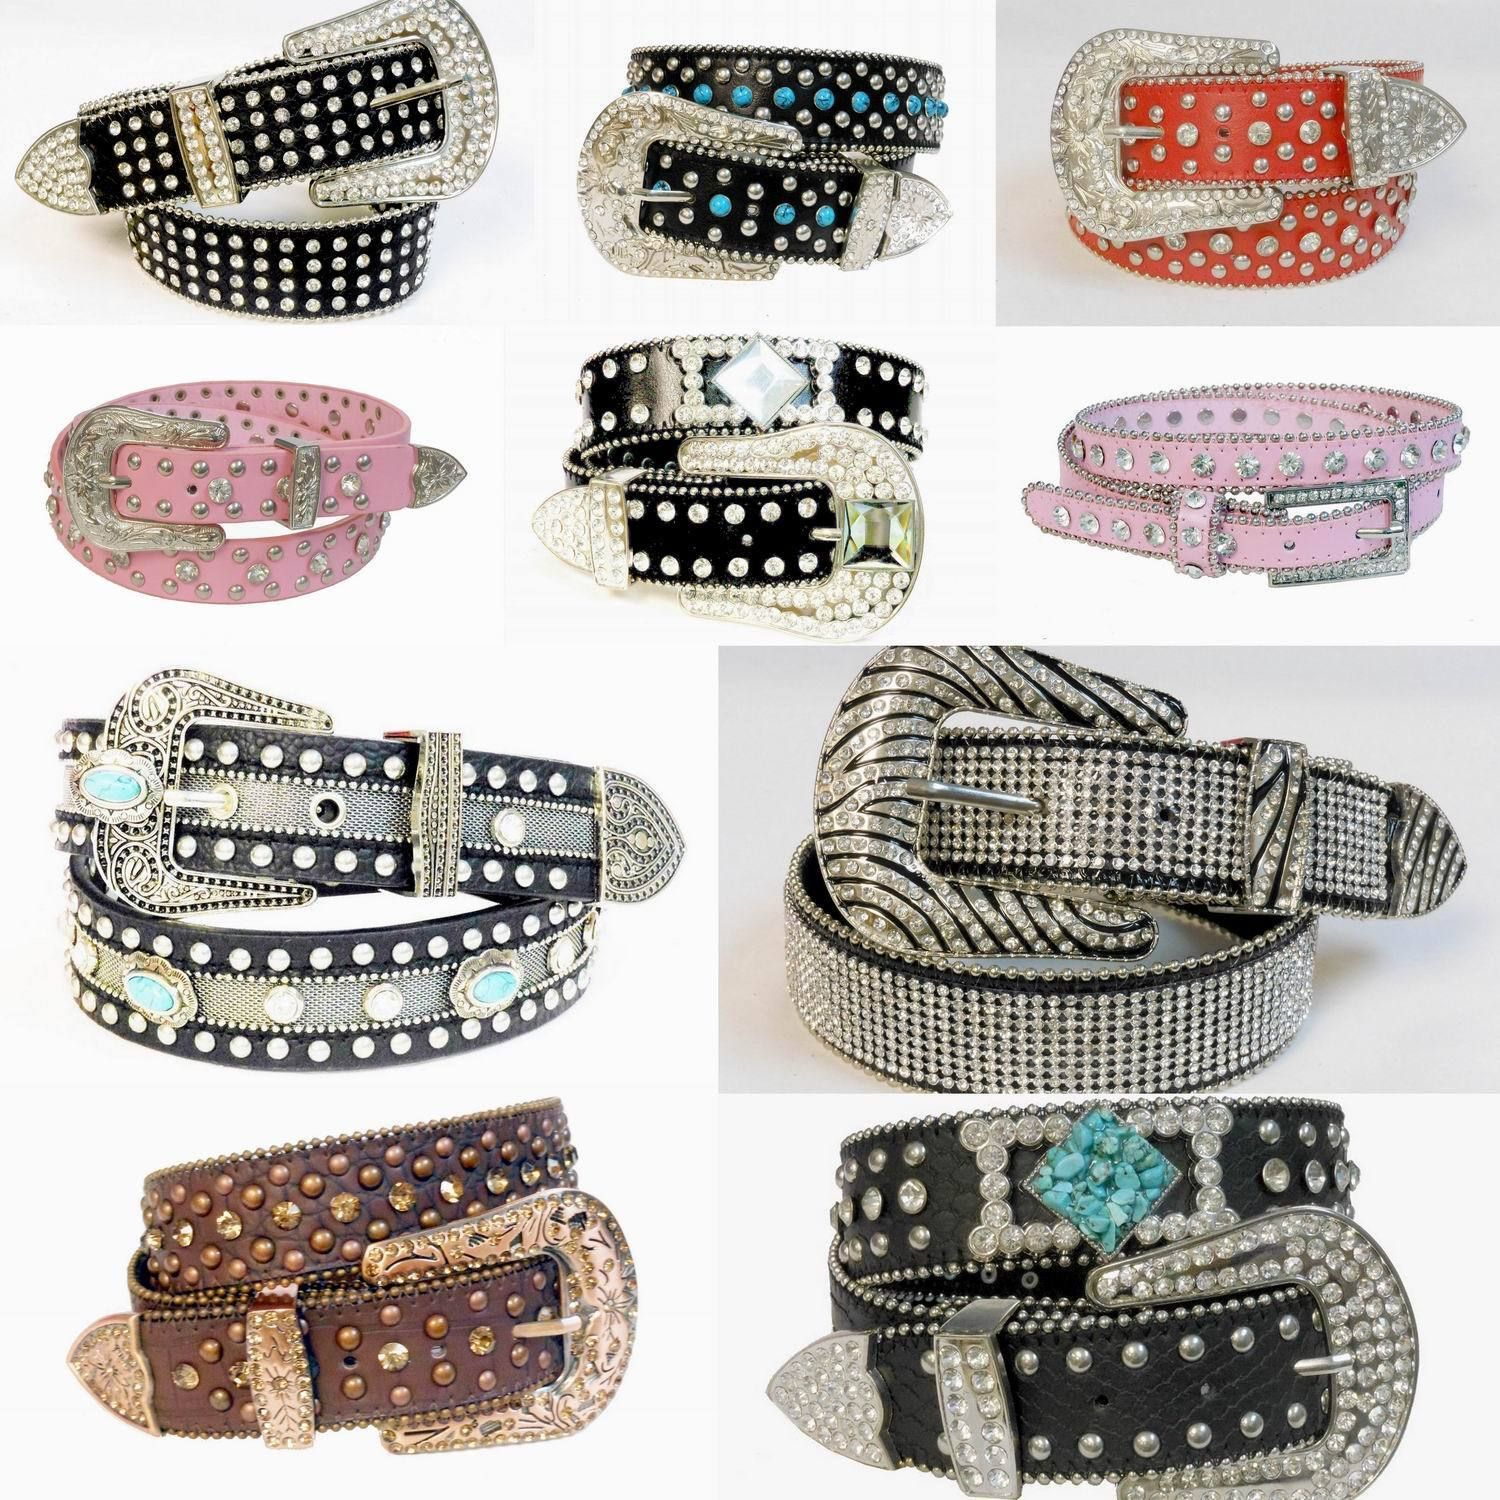 belts_n_jewelry